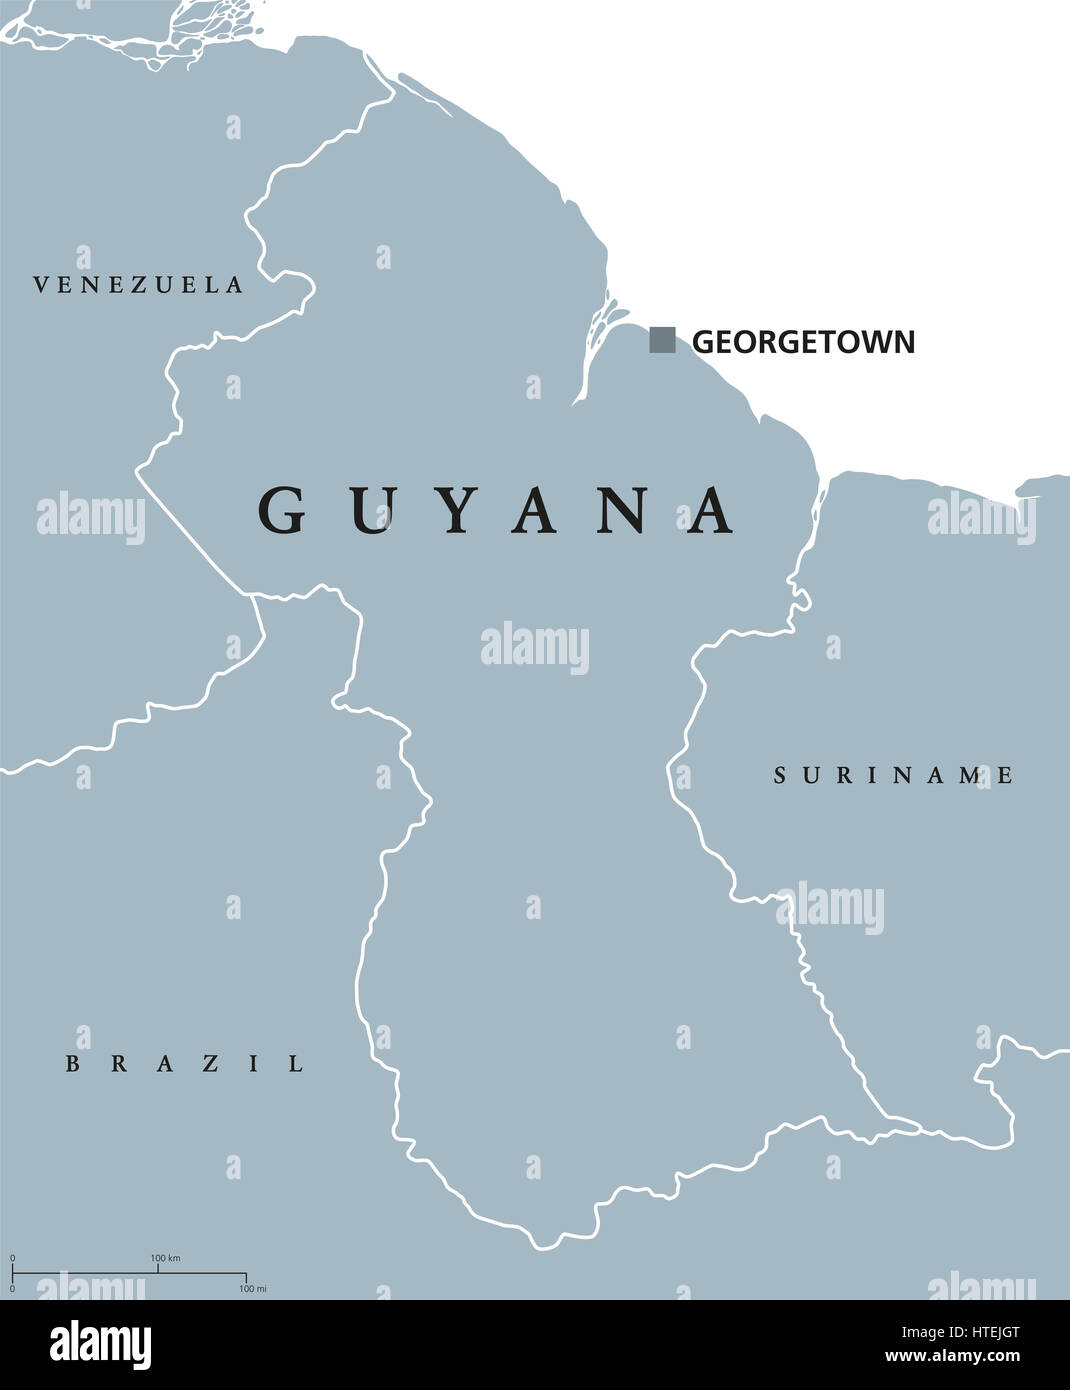 Guyana political map with capital Georgetown and national borders